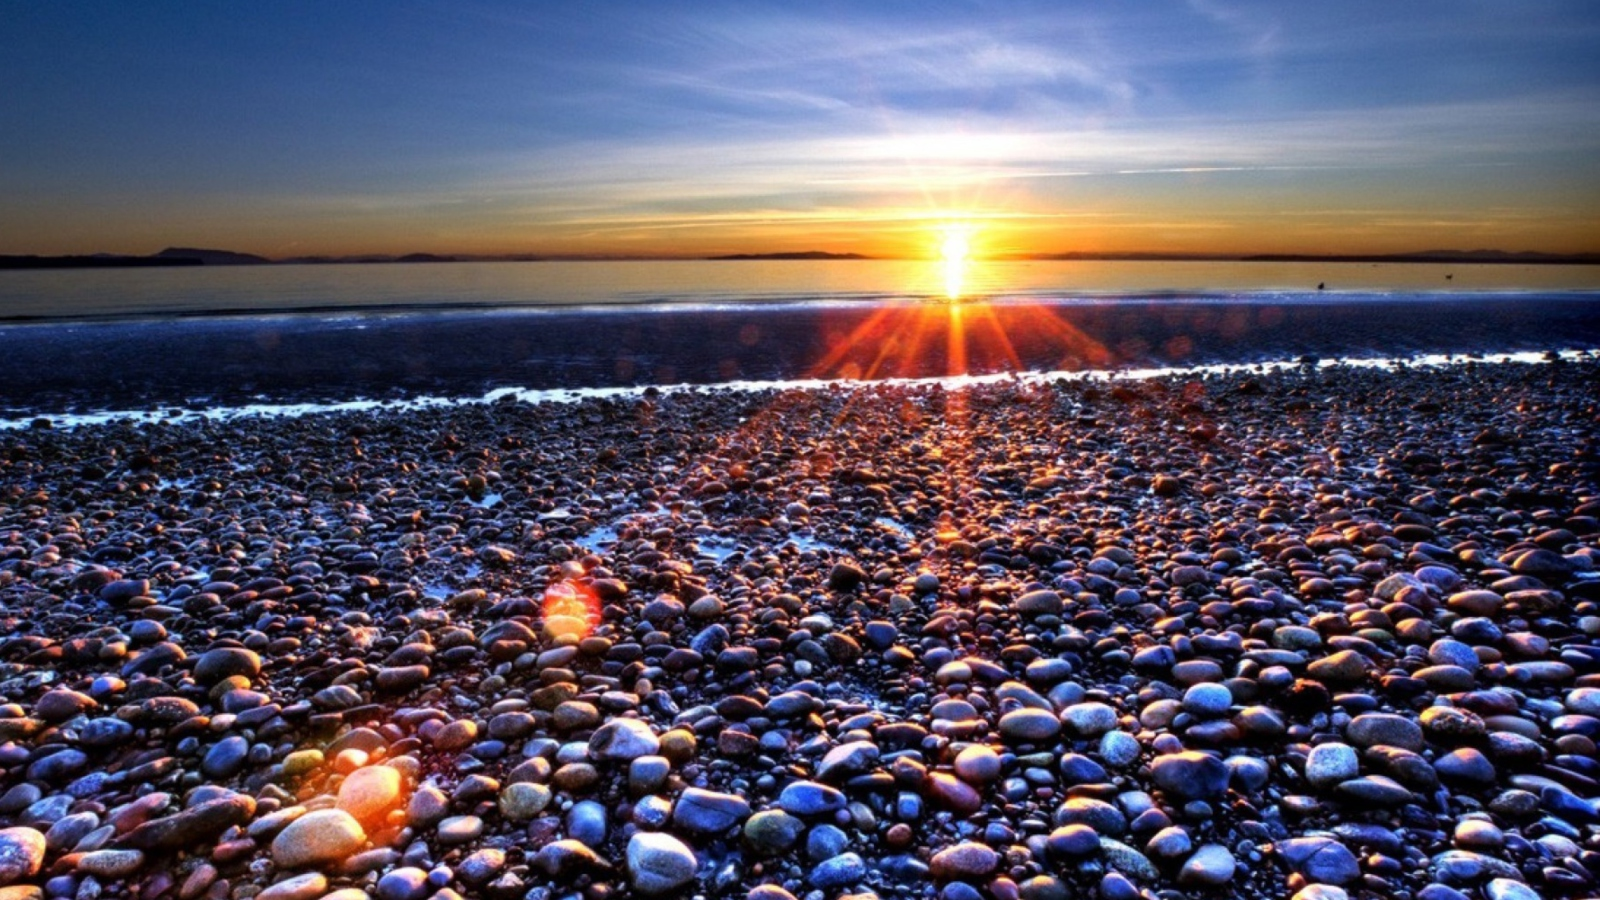 Ihot Wallons Download Ipad Wallpaper Beach Pebbles Autumn: Beach Pebbles In Sun Lights At Sunrise Mobile Picture